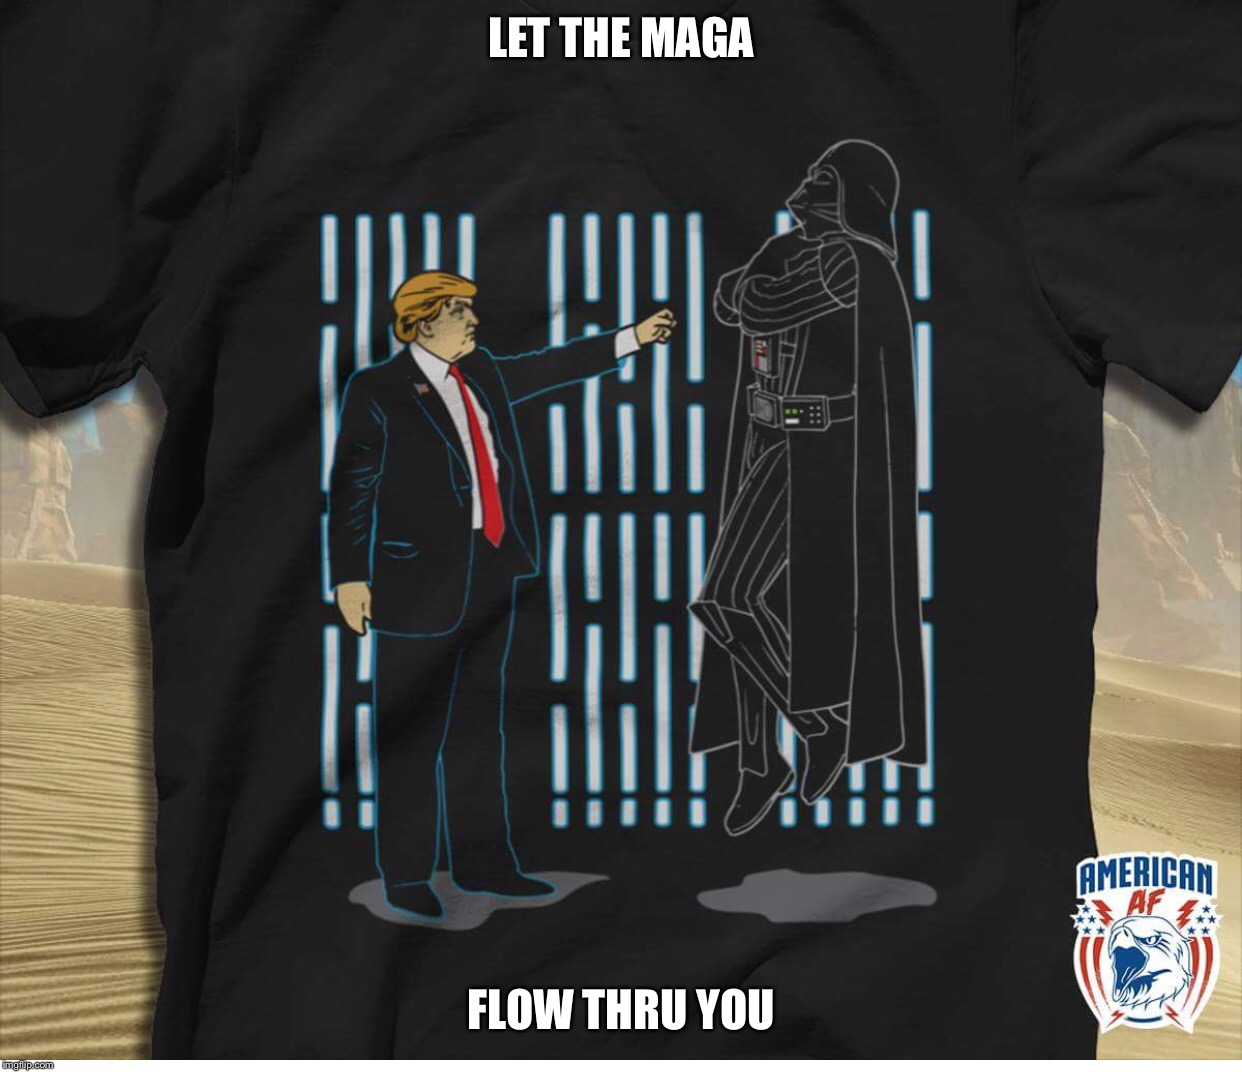 God emperor trump vs lord Vader  | LET THE MAGA FLOW THRU YOU | image tagged in maga | made w/ Imgflip meme maker